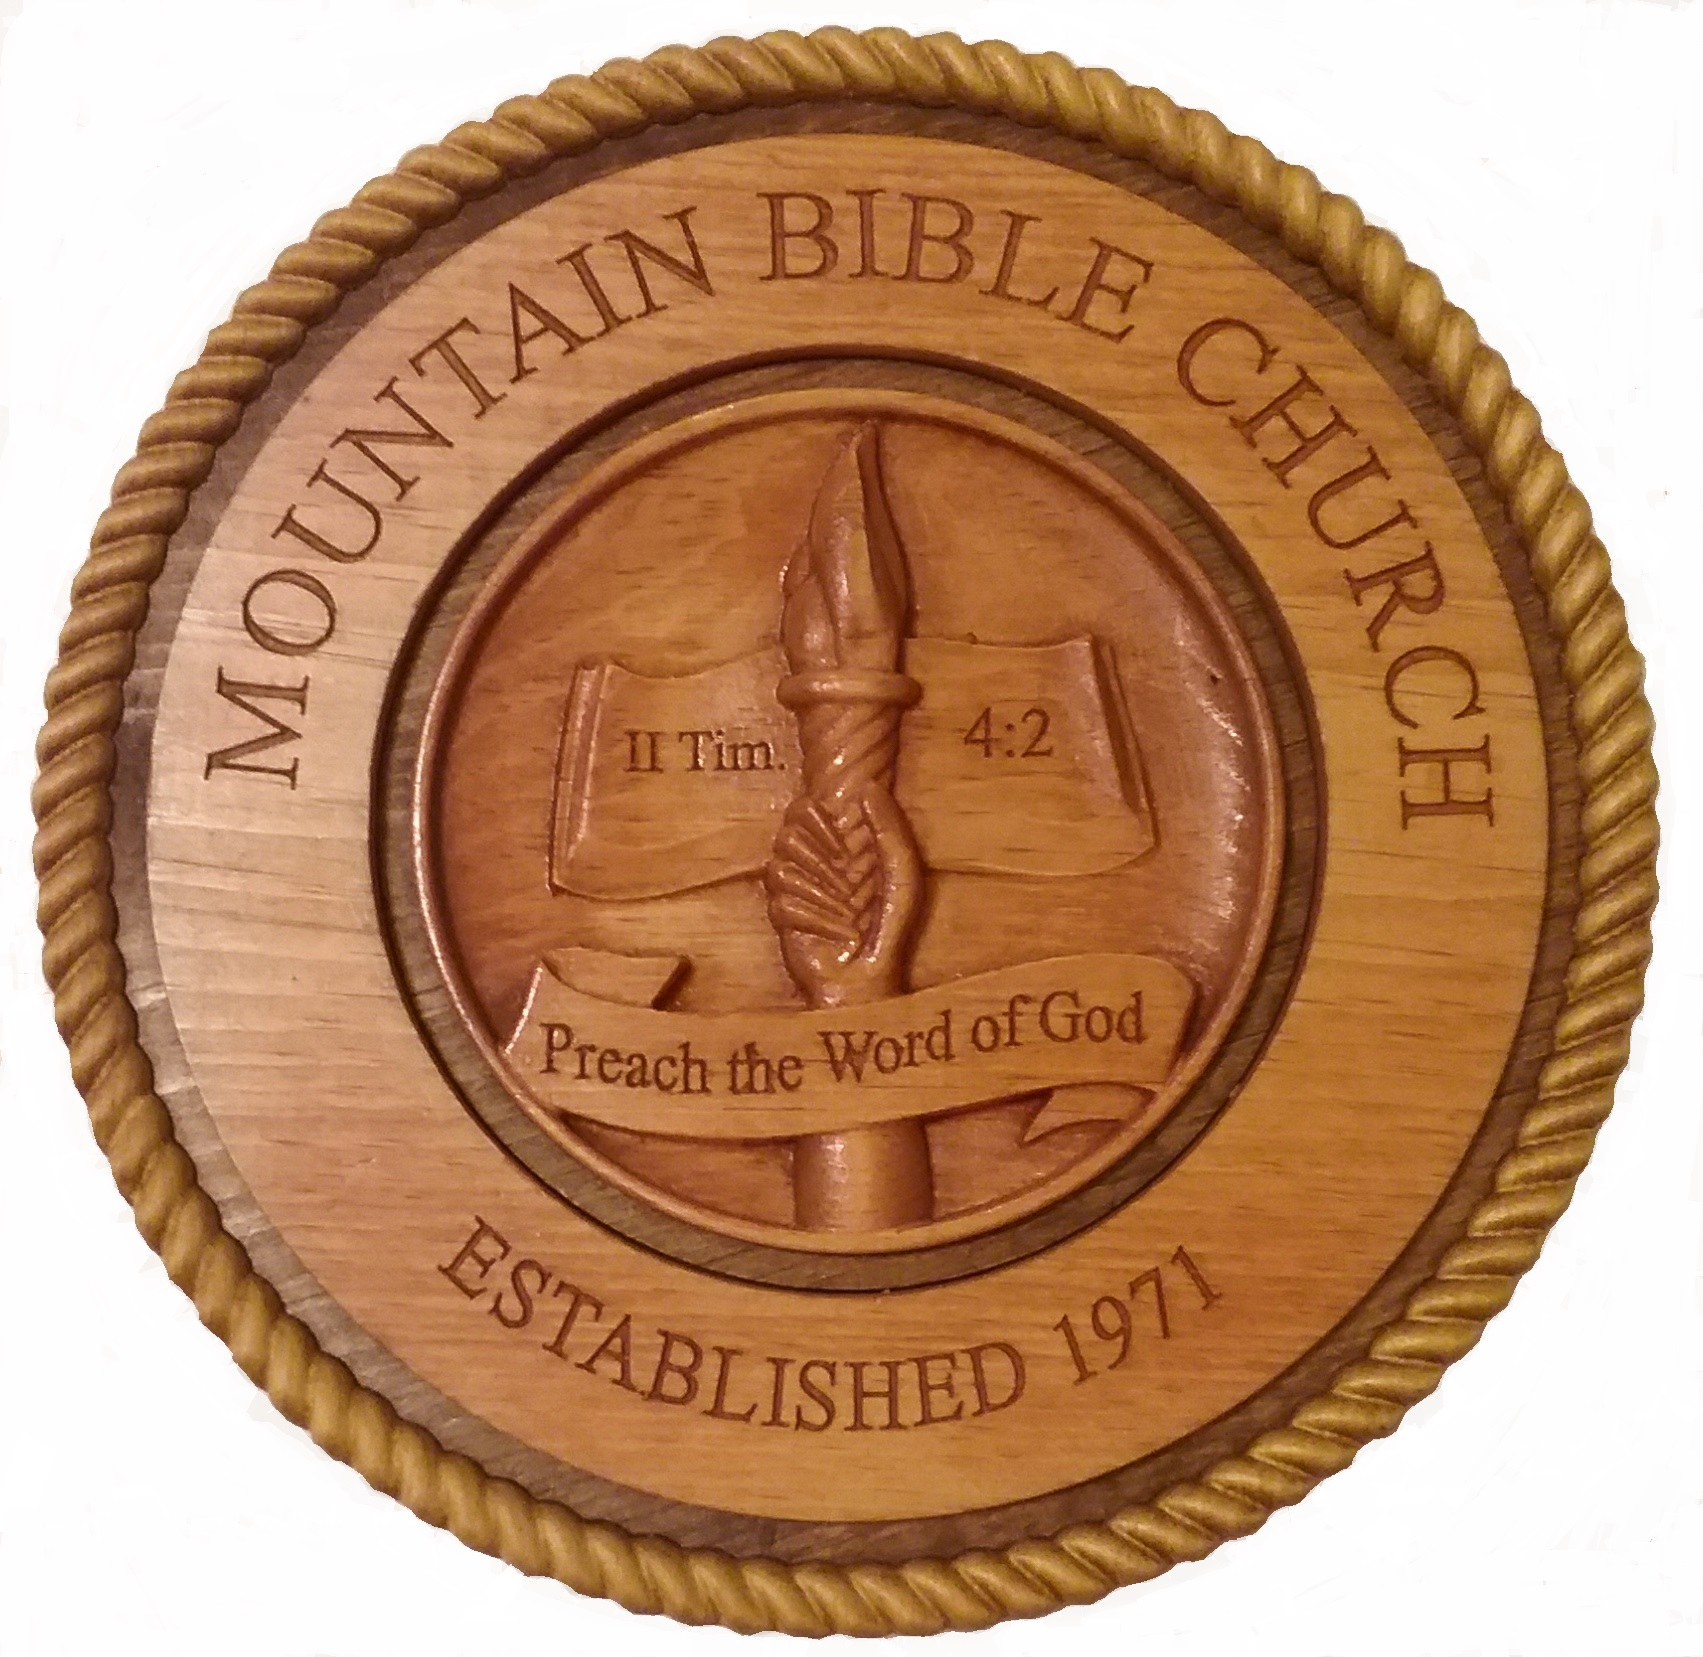 About - From humble beginnings back in 1971, Mountain Bible Church began as a small Bible study group lead by our Founding Pastor, Dr. Marvin Slifer.